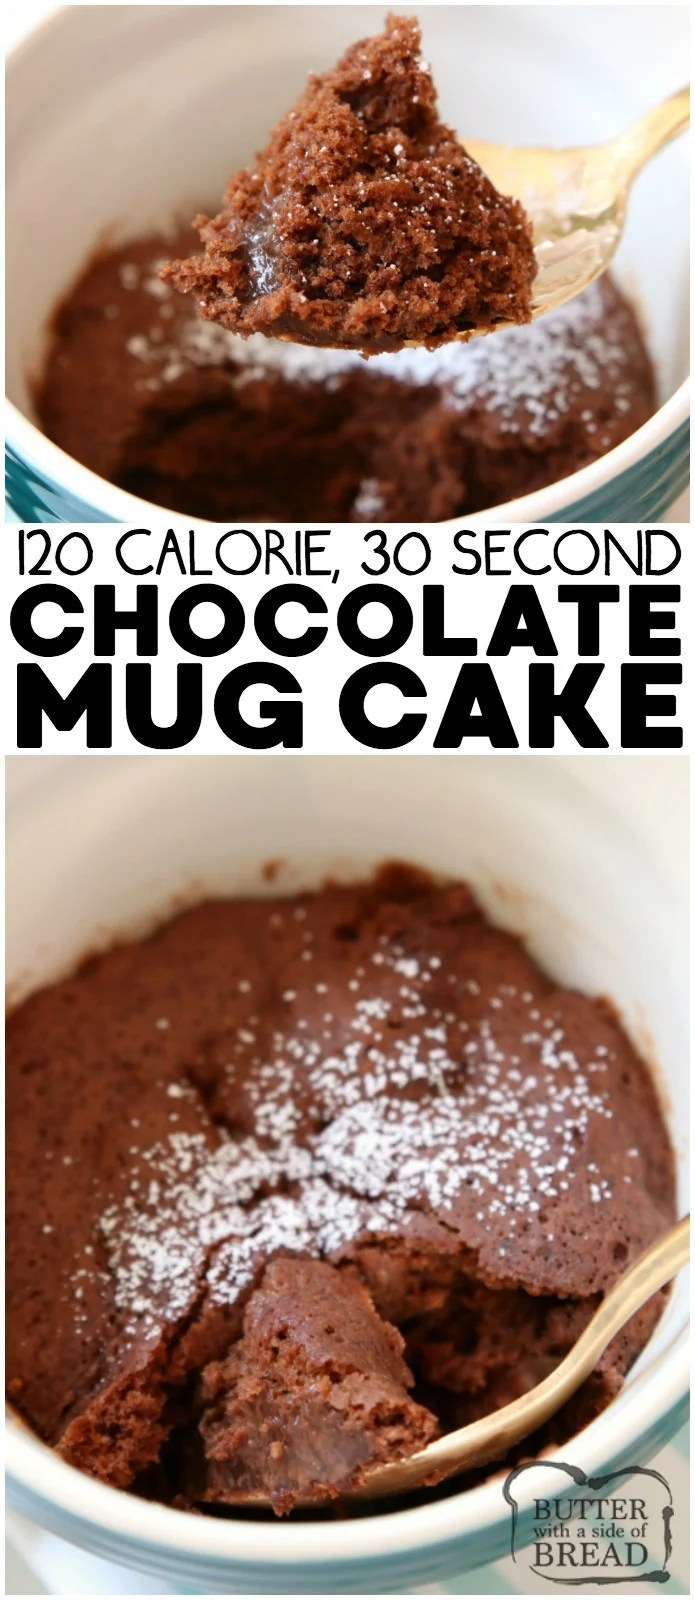 100 Calorie Chocolate Mug Cake Recipe made with common ingredients in 30 seconds! Soft, sweet & fudgy low-cal chocolate mug cake perfect for cravings.  #mugcake #cake #chocolate #lowcal #sweet #lowcalorie #dessert #recipe from BUTTER WITH A SIDE OF BREAD